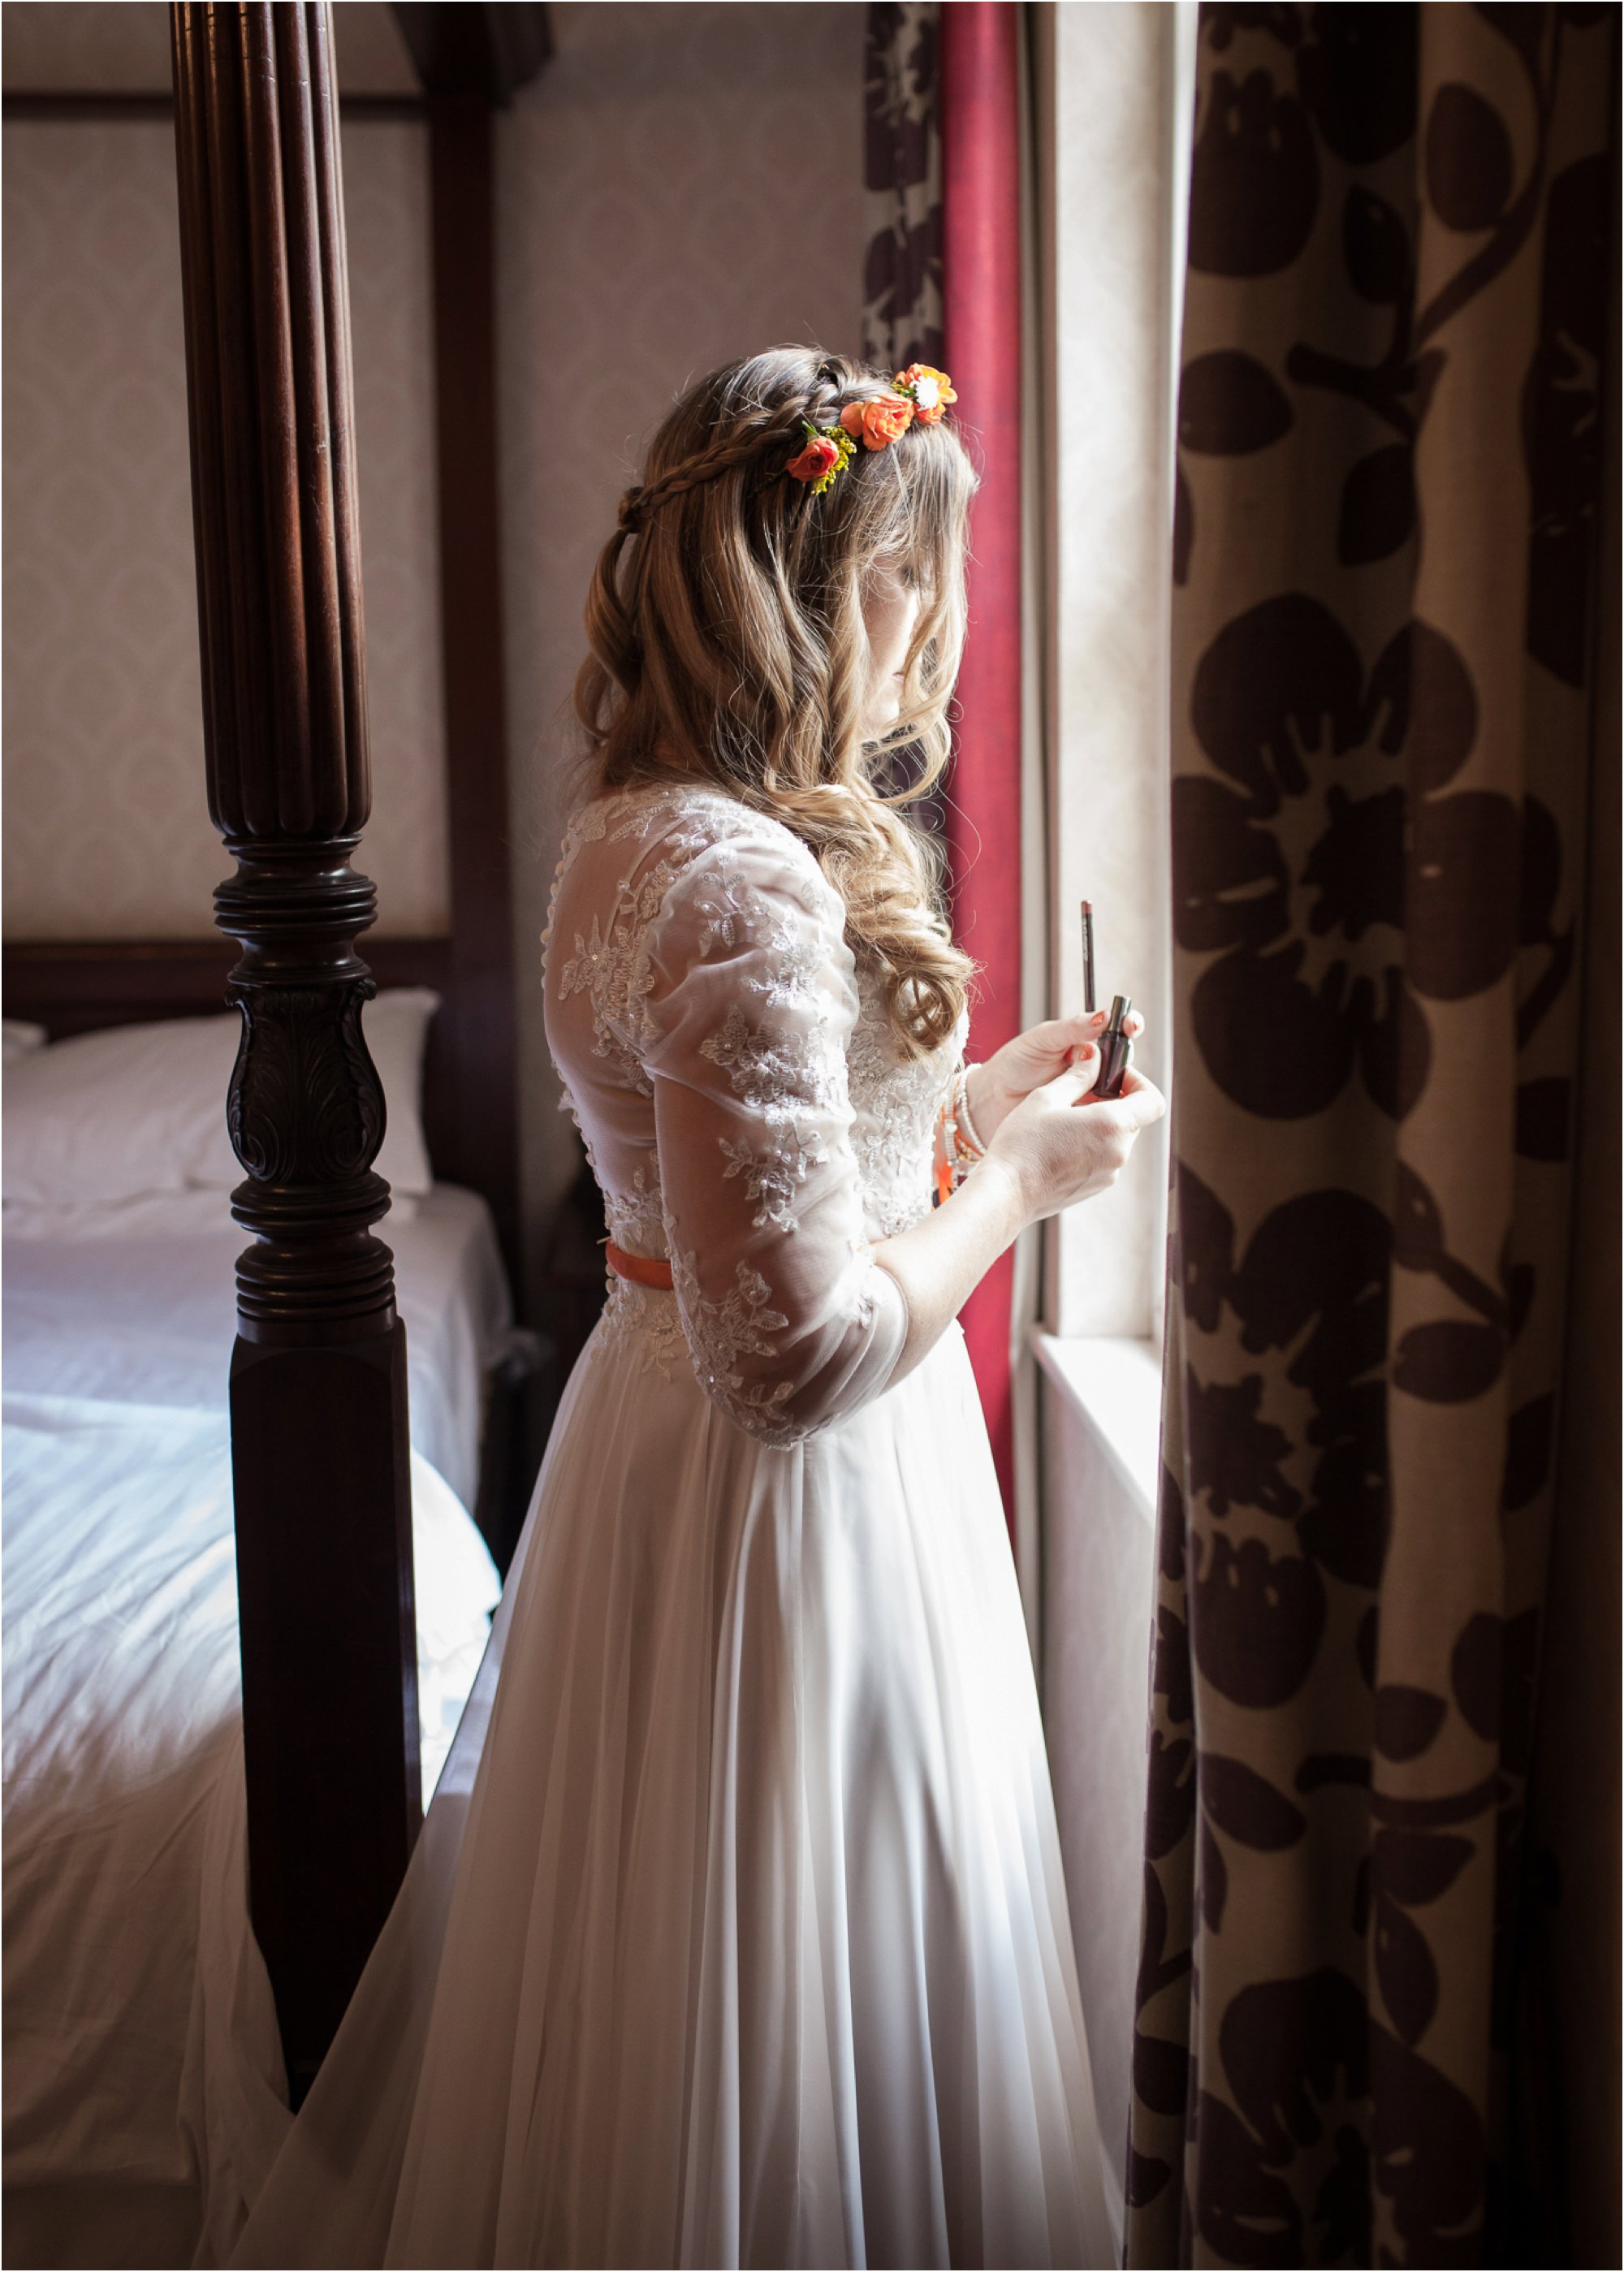 Styal_Wedding_Wilmslow_Cheshire_Autumn_Colourful_photography_0061.jpg